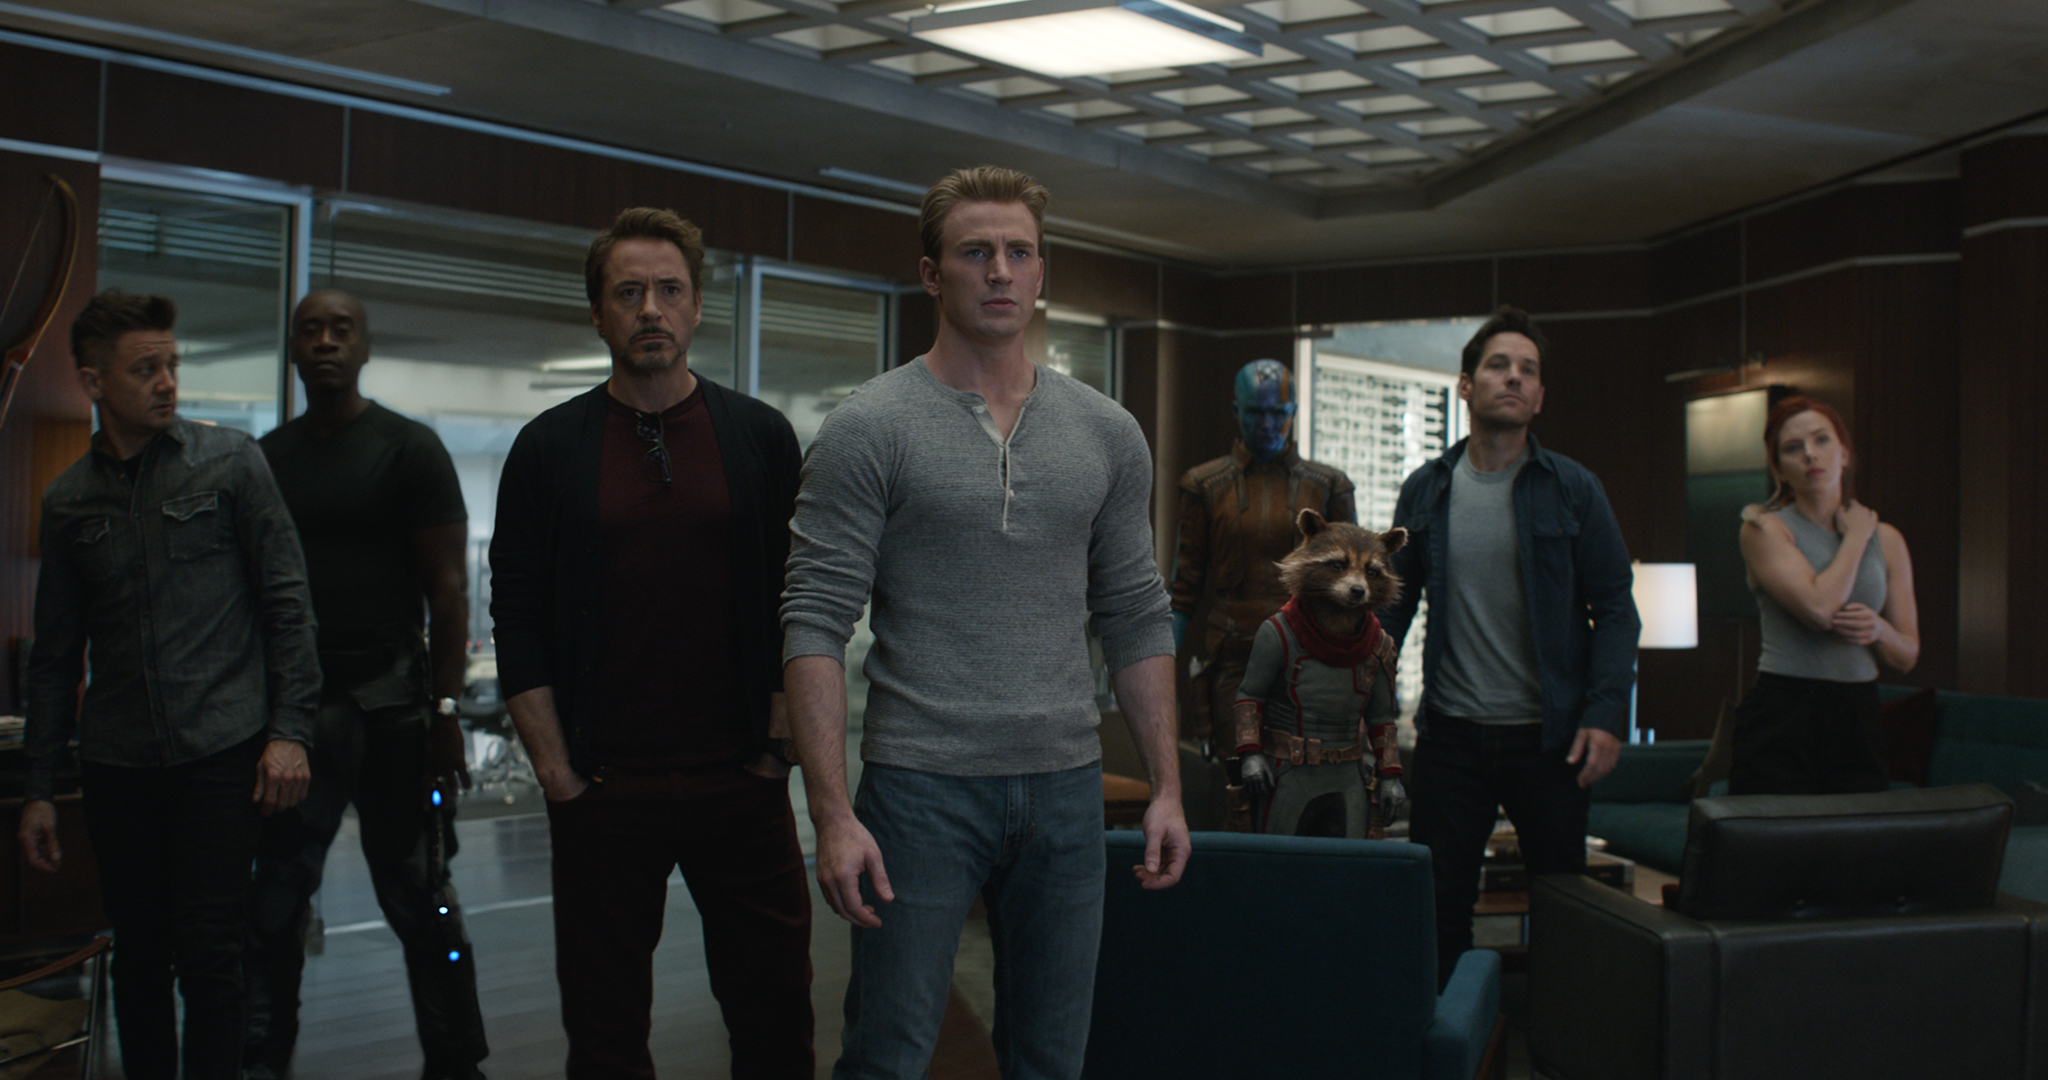 Long Live House Marvel: 'Endgame' Worthy of the Throne